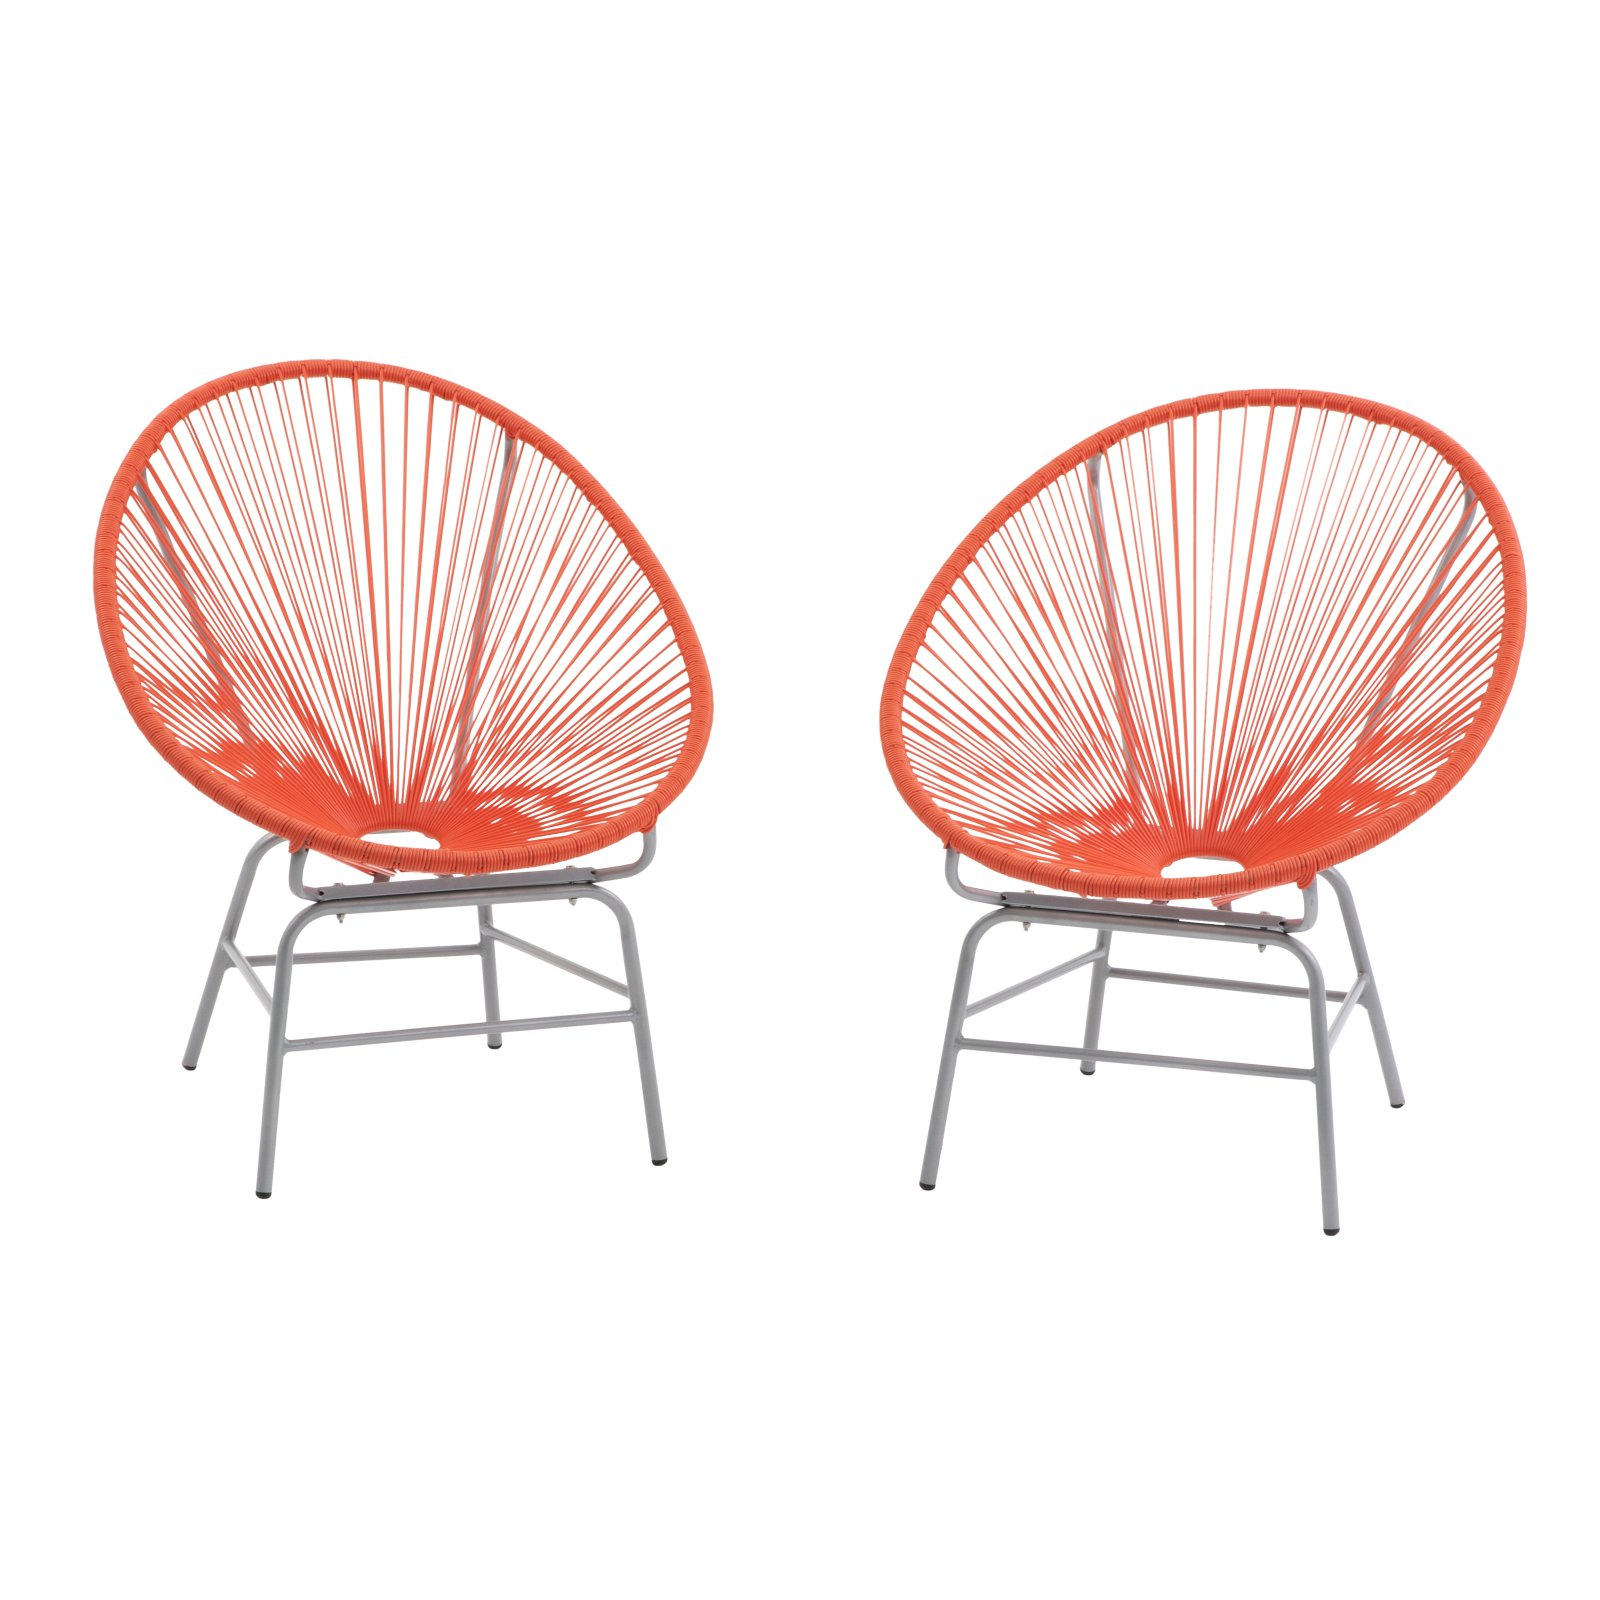 Coral Coast Haley Acapulco All-Weather Wicker Sun Chair - Set of 2